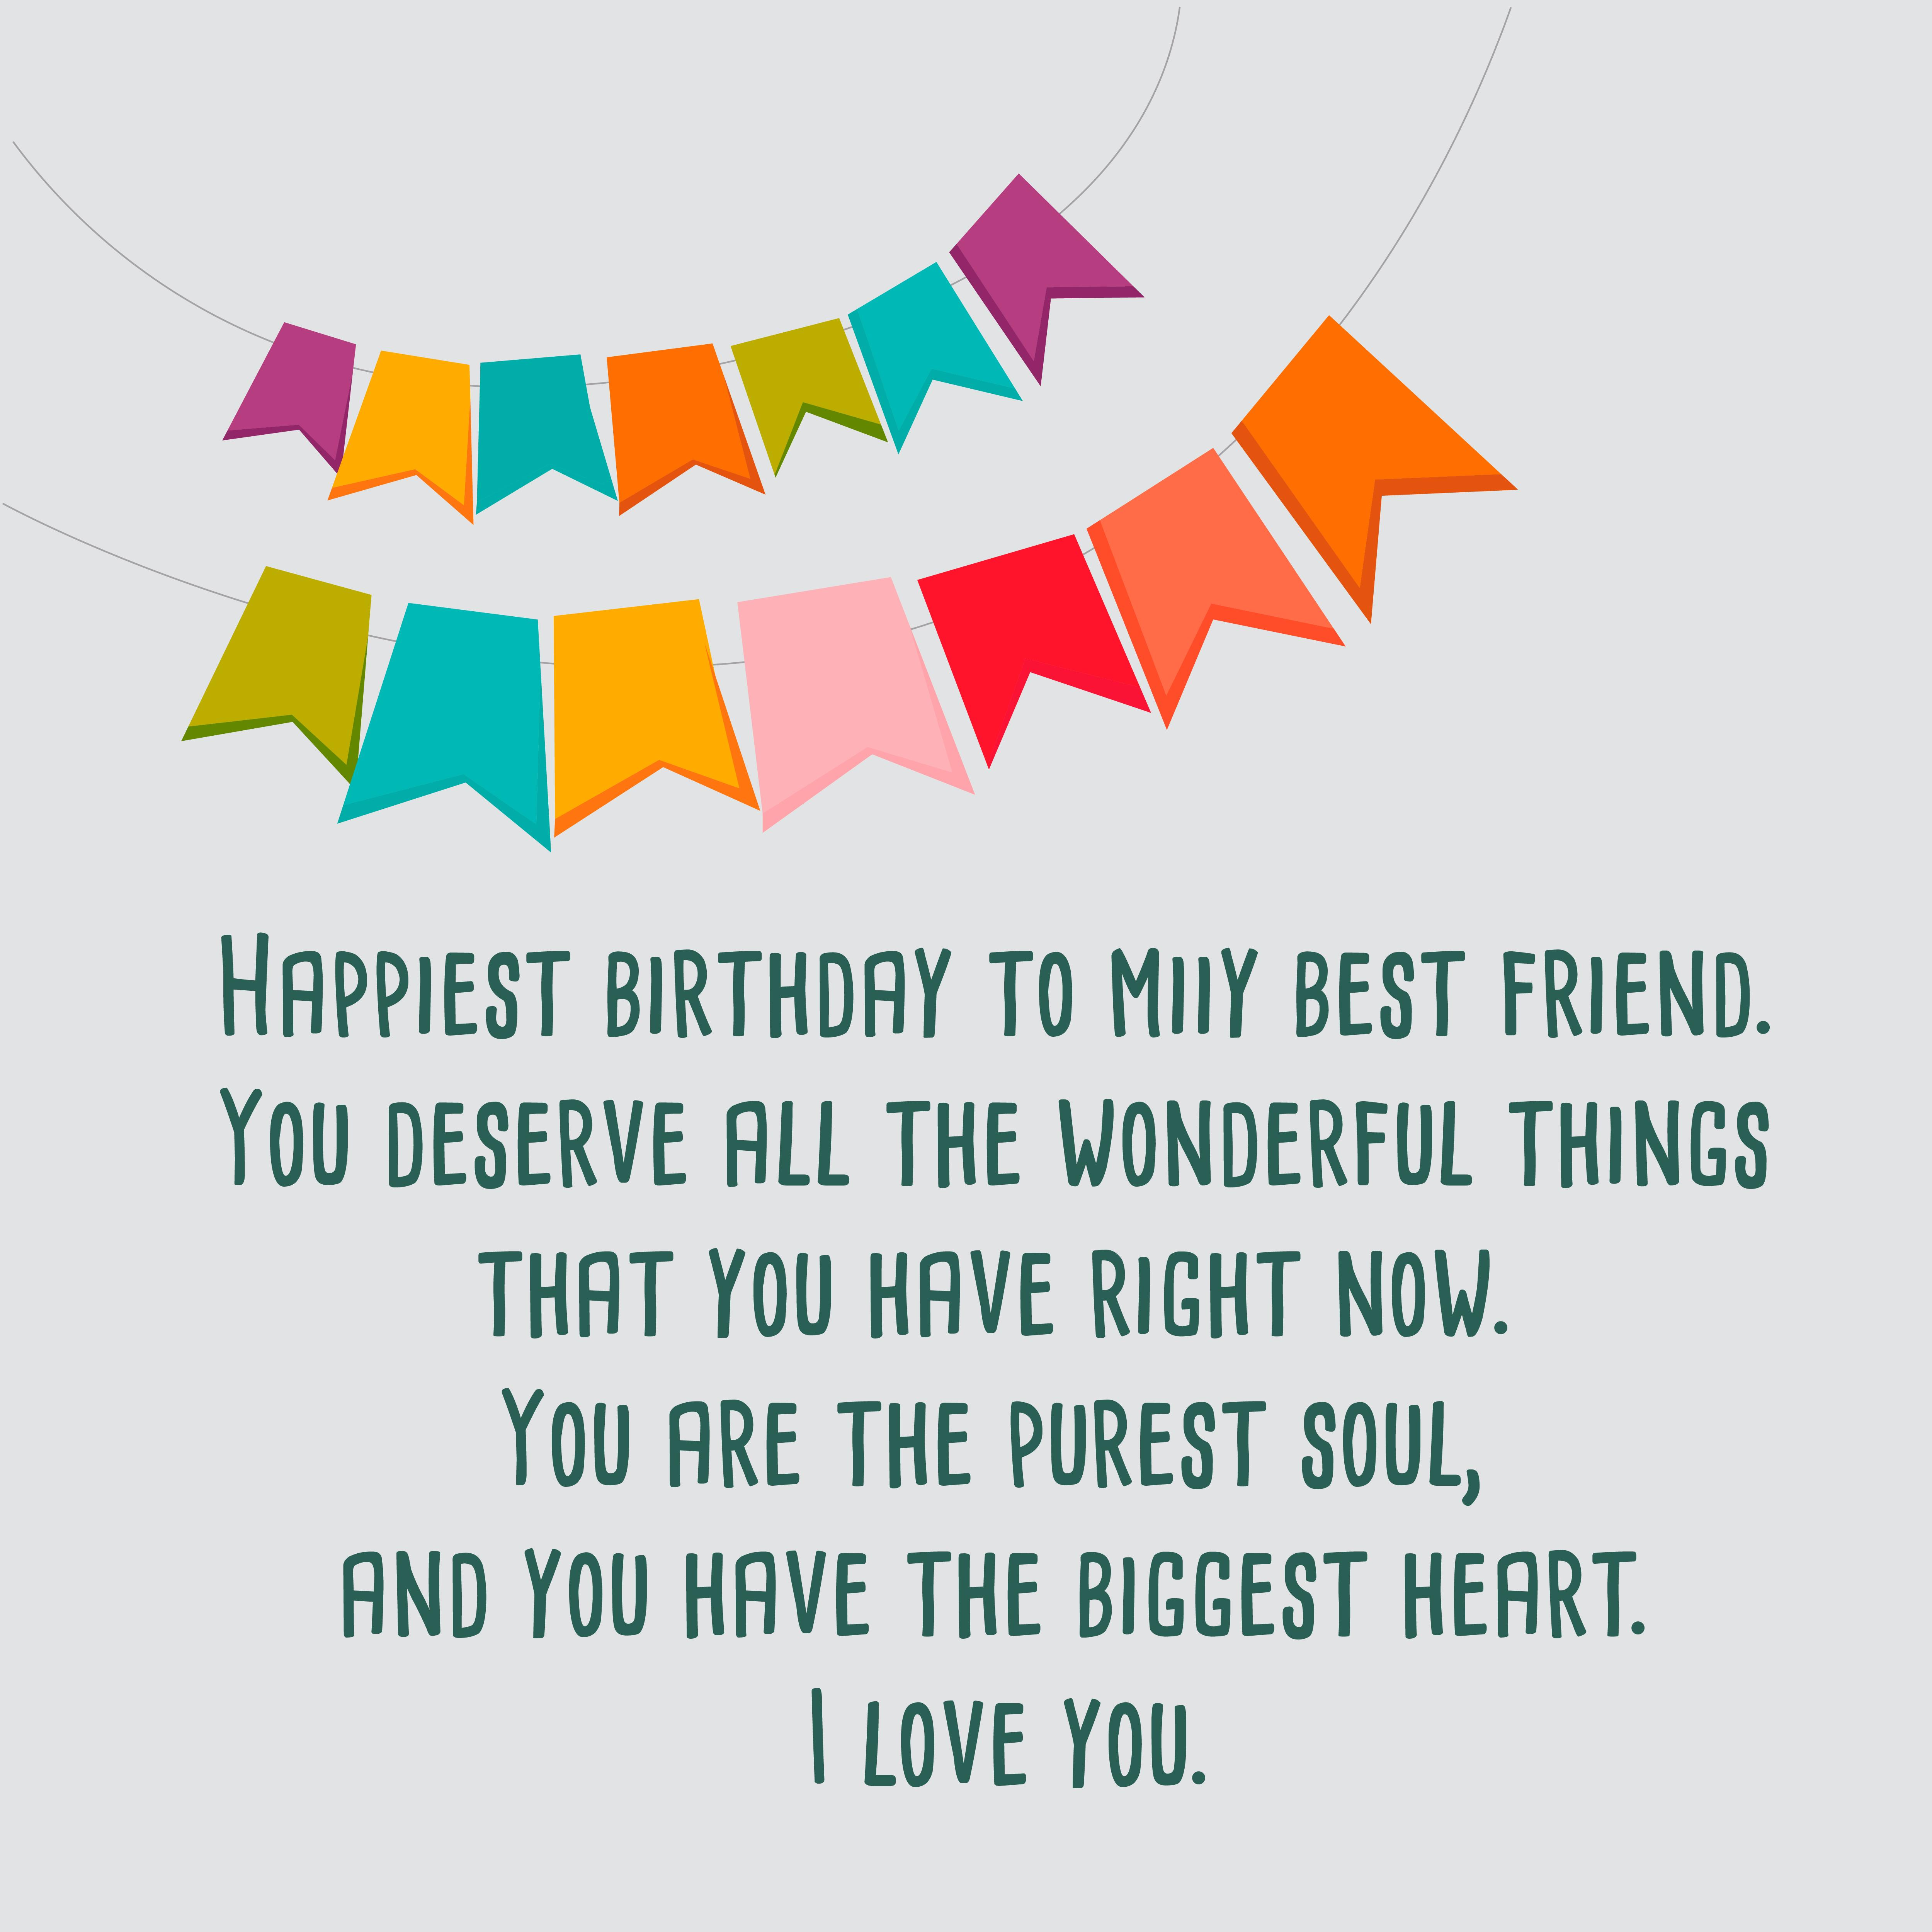 Happy Birthday Best Friend.The 225 Happy Birthday To My Best Friend Quotes Top Happy